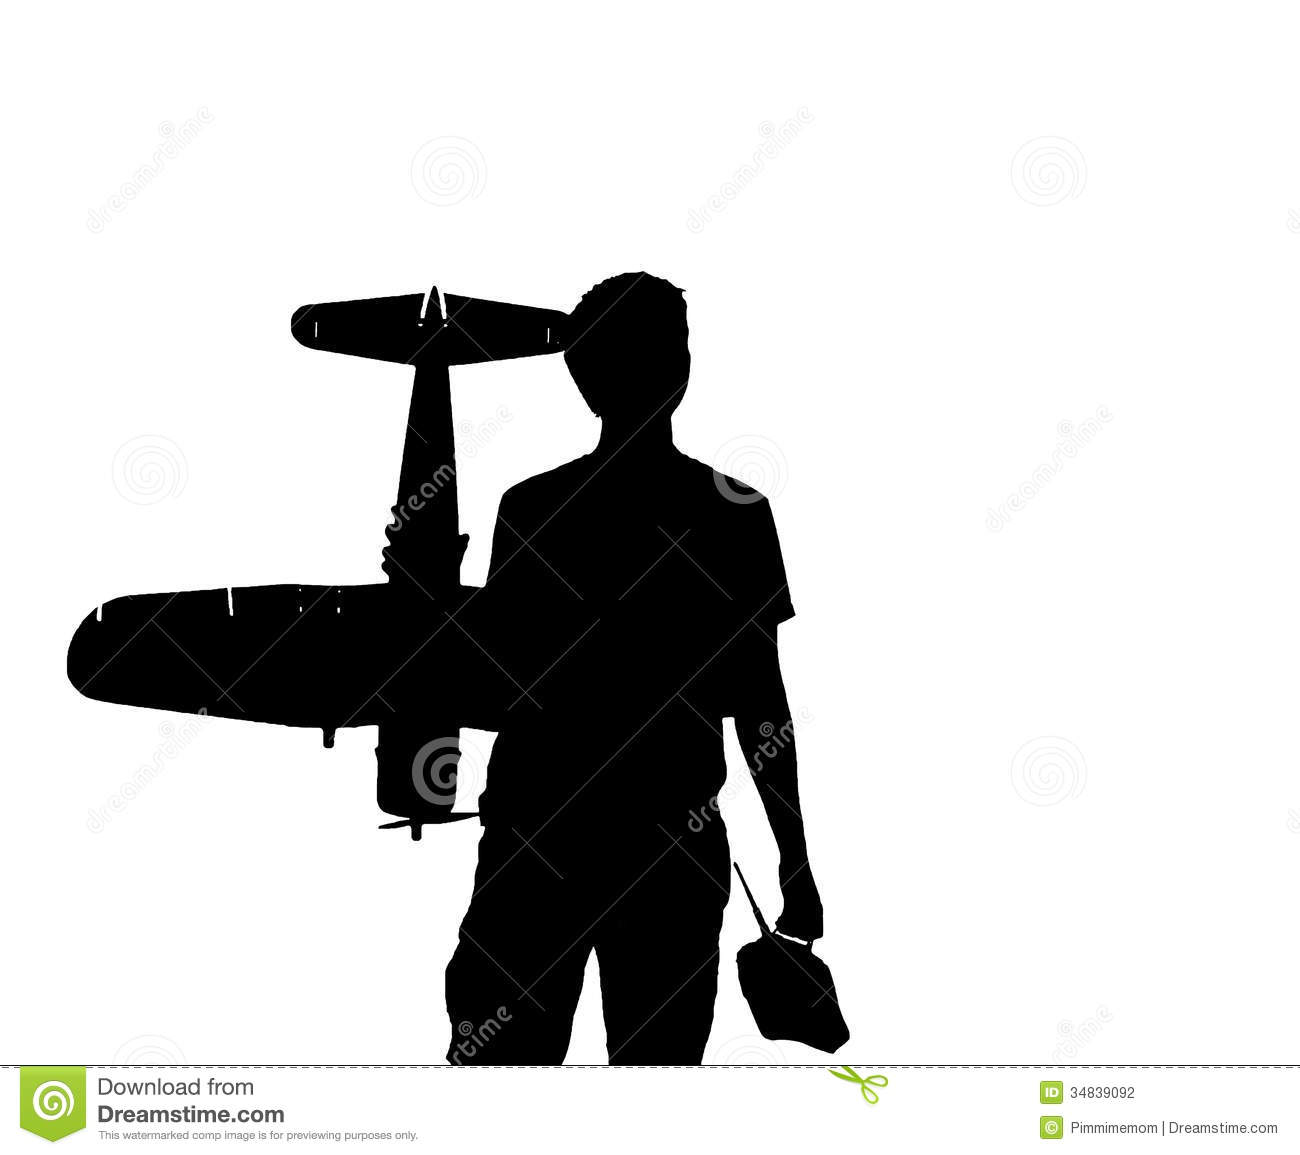 toy helicopter remote with Stock Photography Young Man Rc Airplane Controller Black Silhouette White Background Copy Space Image34839092 on Syma X5c 1 Review additionally The Watchtower further 391862 furthermore Index moreover Watch.